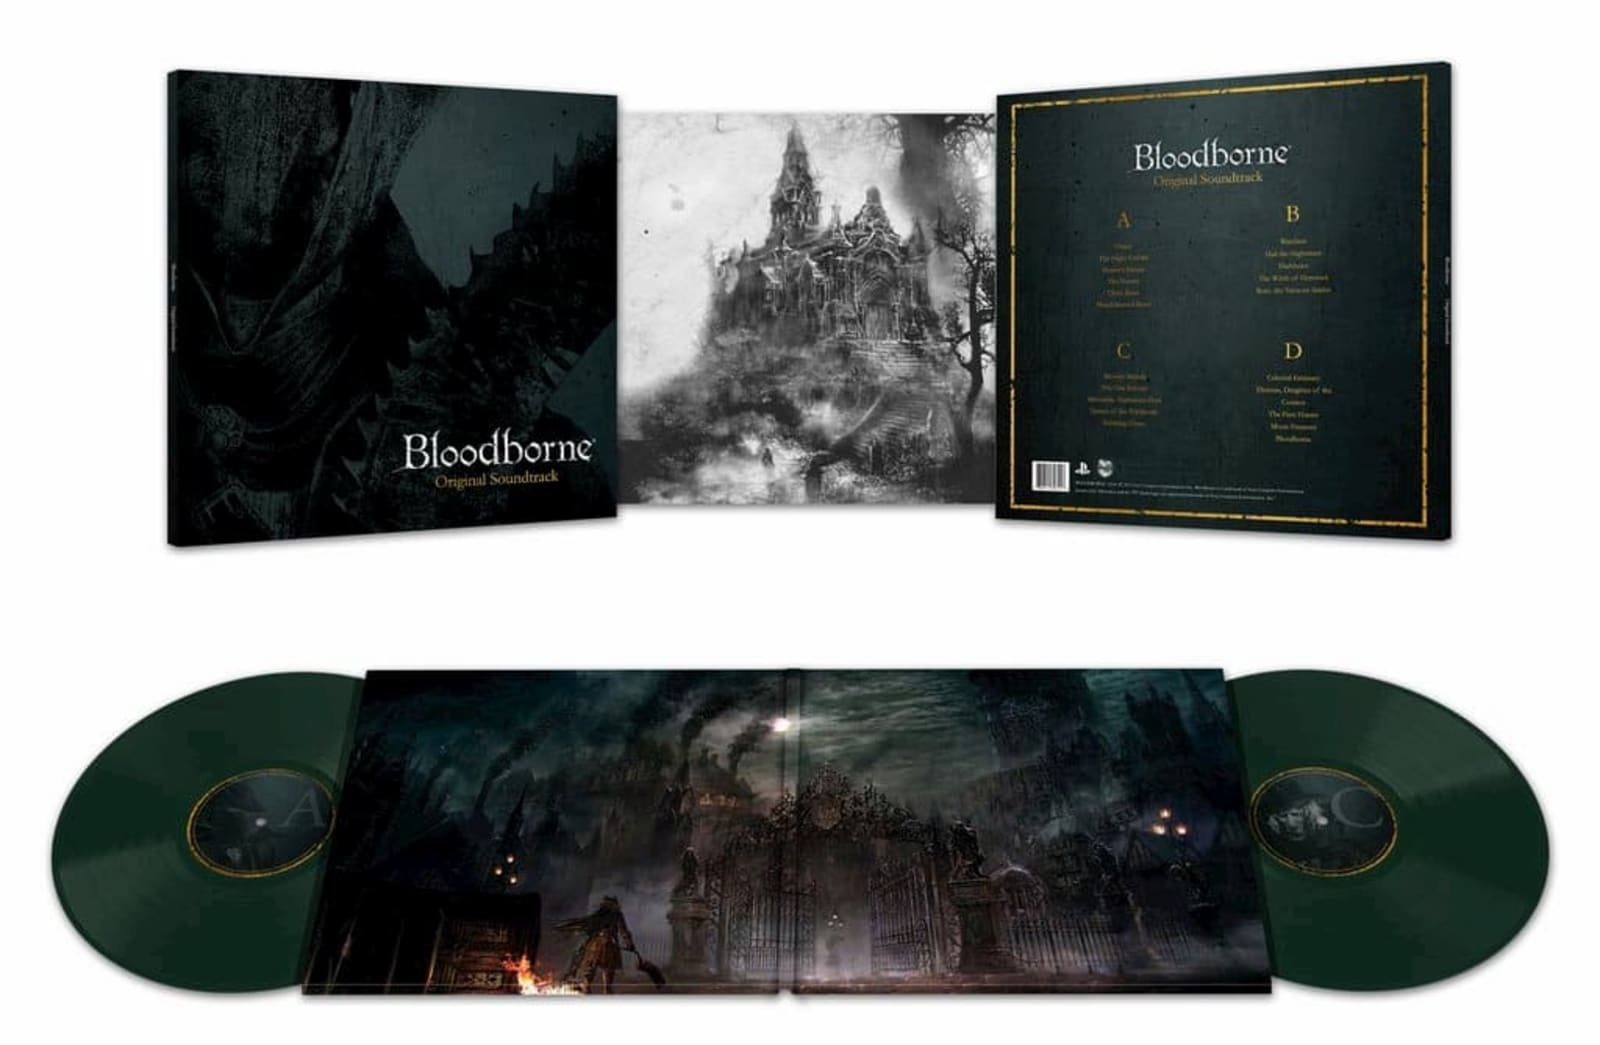 Bloodborne's atmospheric score is getting a vinyl release